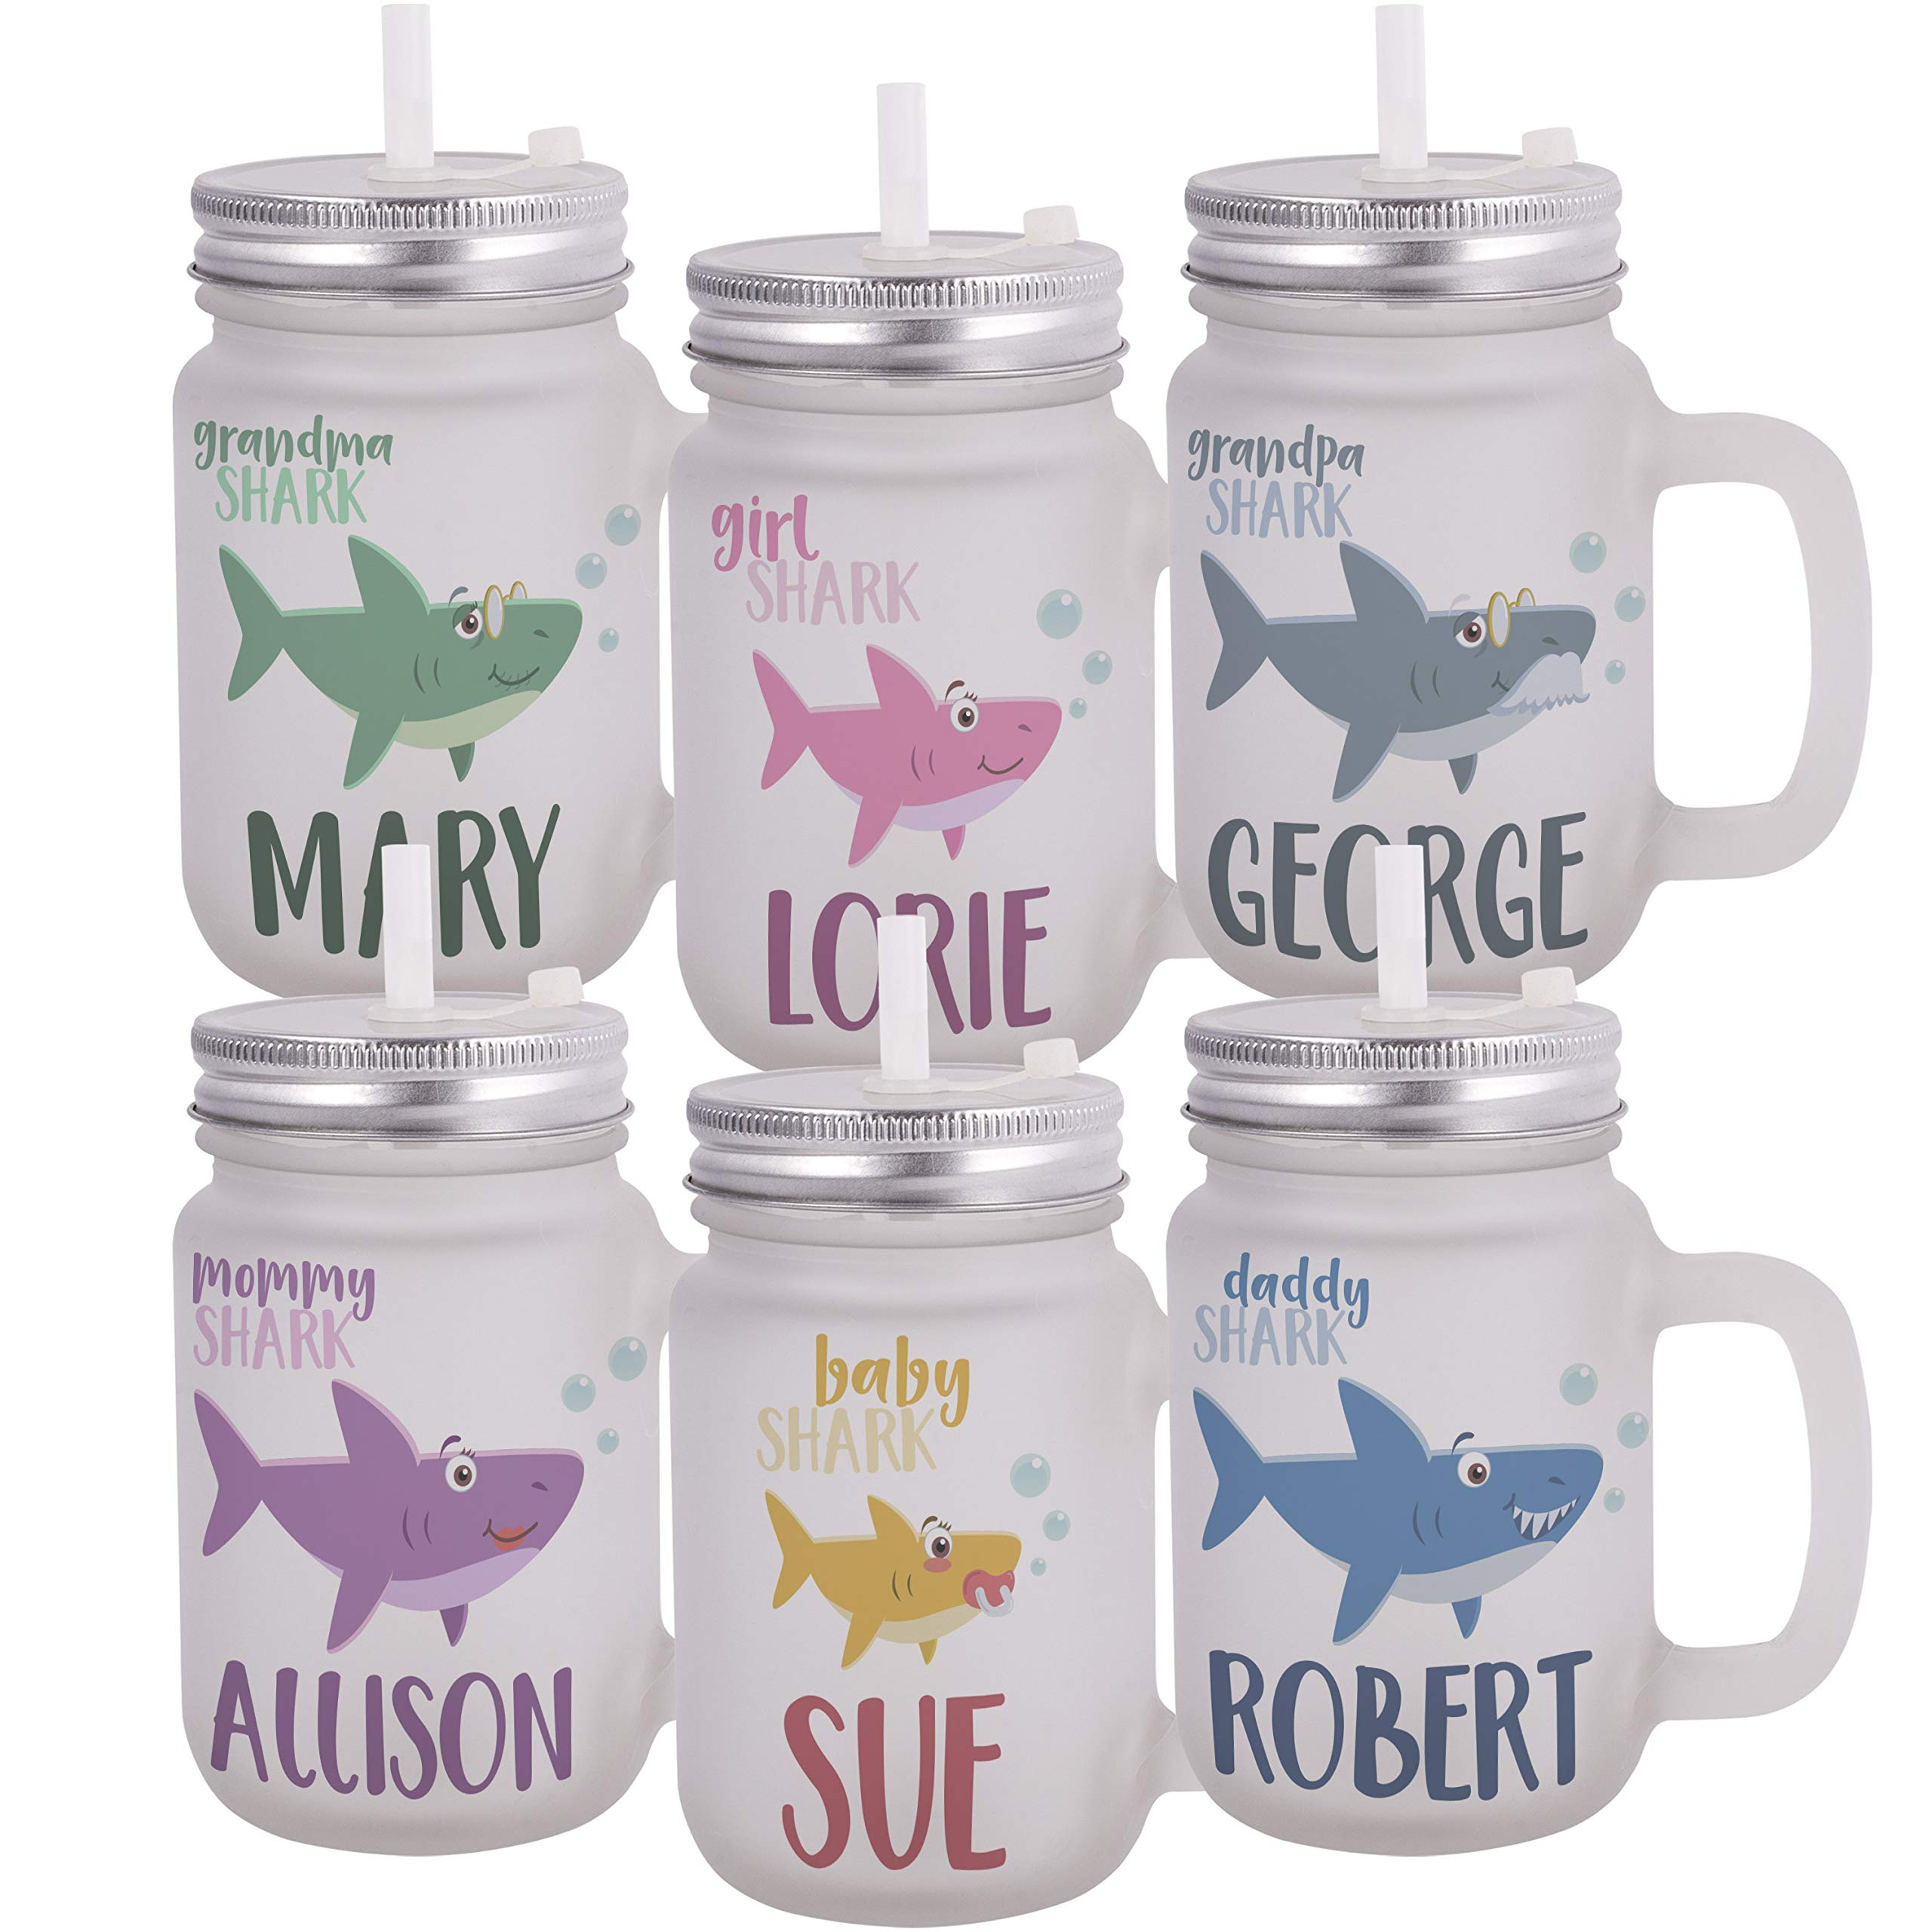 Personalized Gifts Shark Family Coffee Mug - 12oz Frosted Mason Jar Coffee Mug with Lid and Straw -Birthday Gifts, Christmas Gifts, Mother's Day-Baby, Boy, Girl, Mommy, Daddy, Grandma, Grandpa Sharks